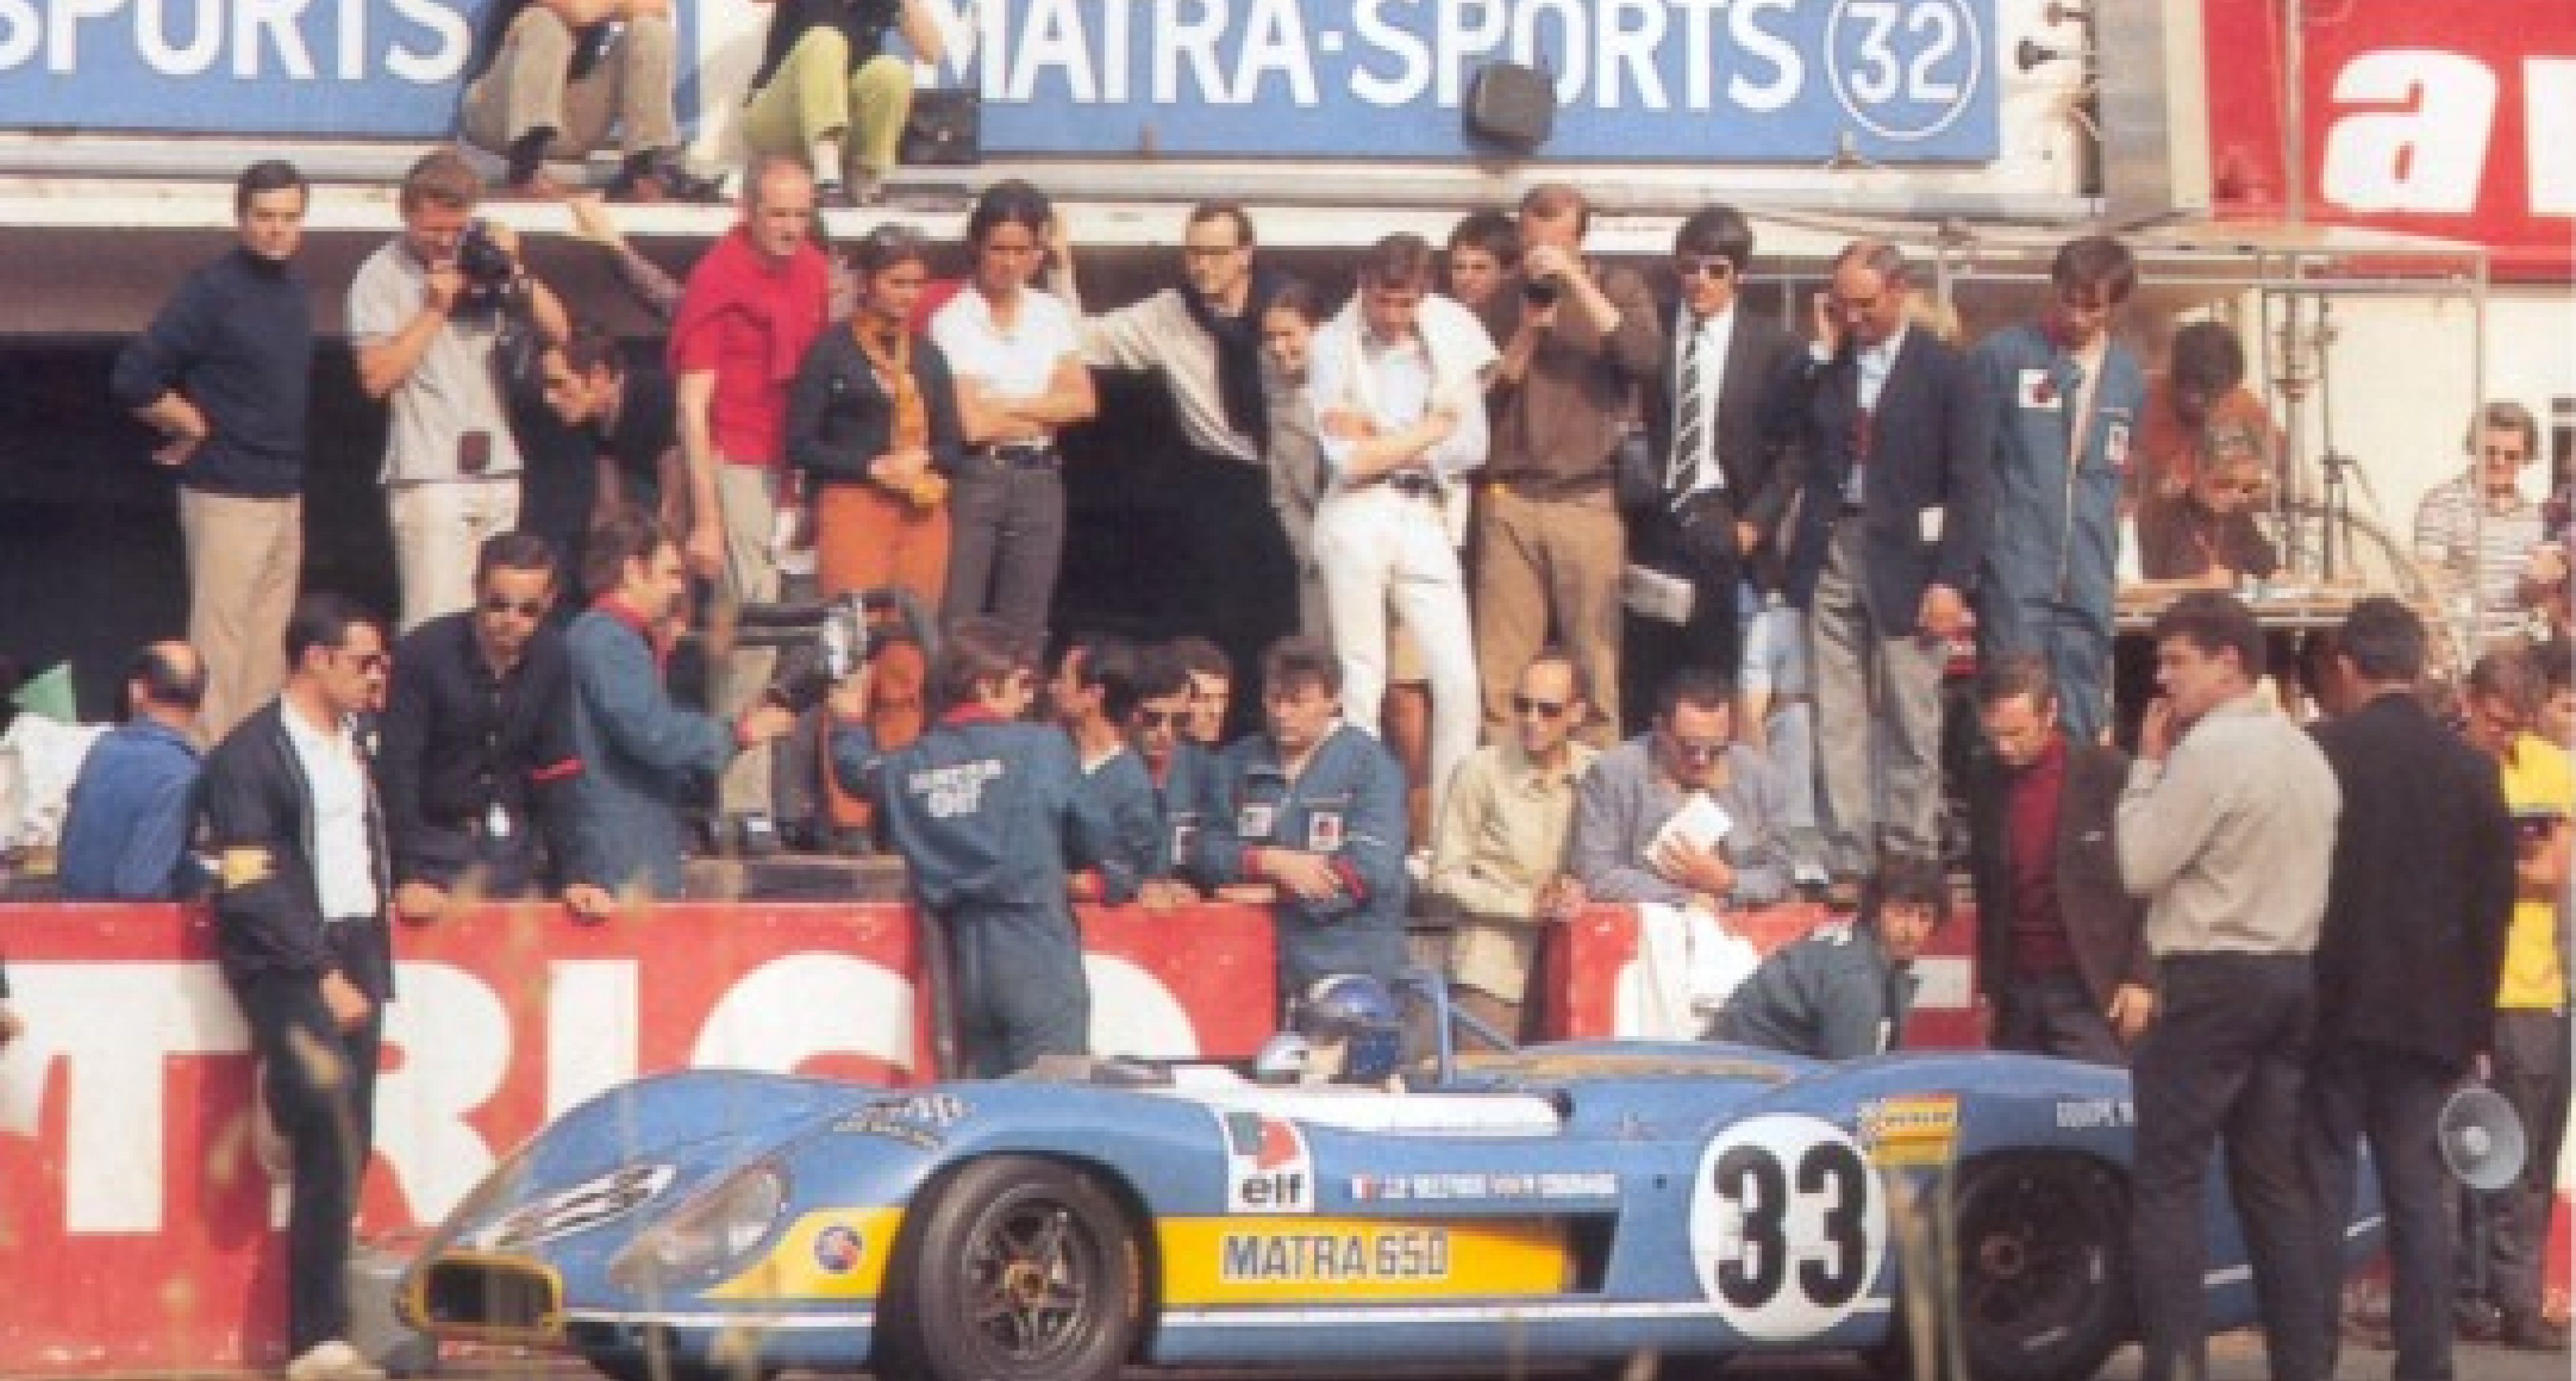 Historic Matra Le Mans Car to be Sold by Artcurial